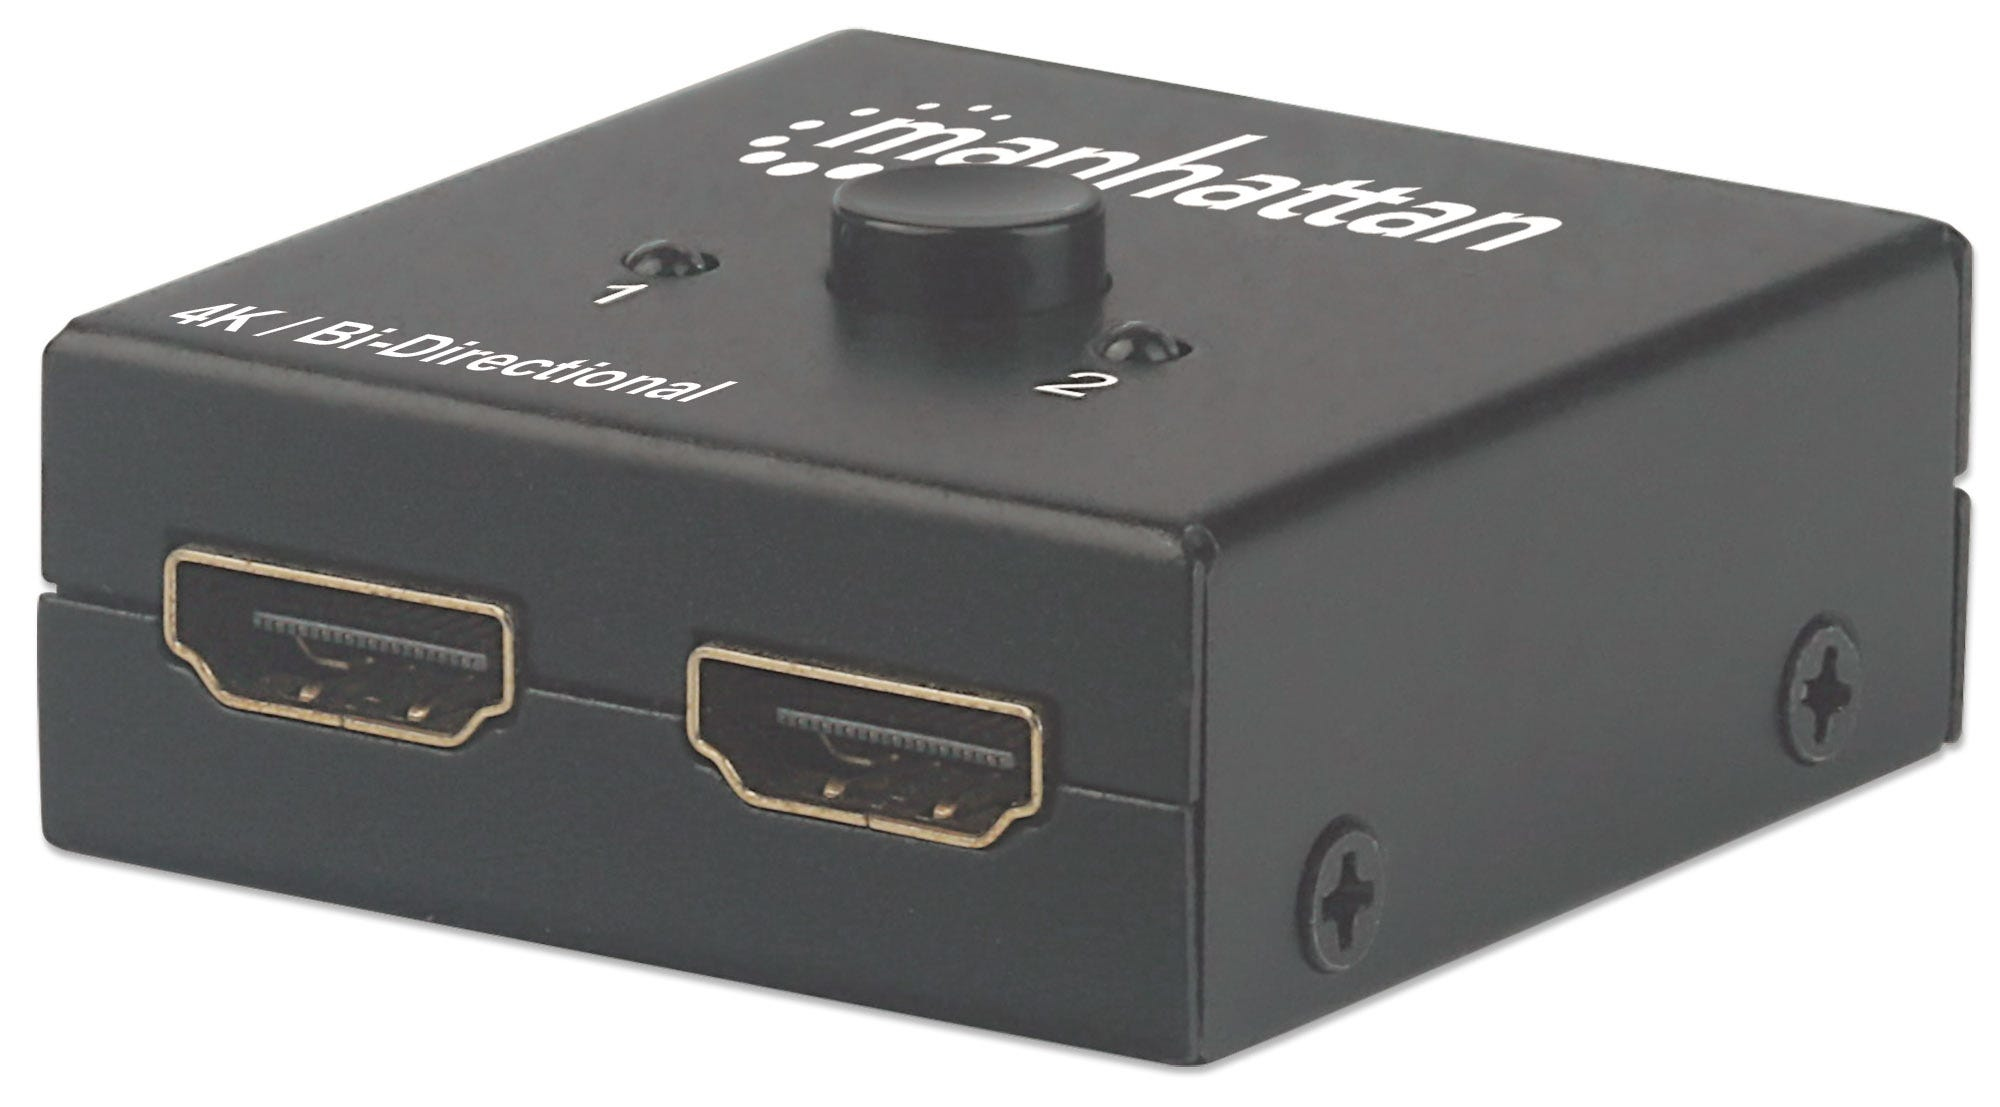 Manhattan HDMI 4K Splitter/Switch 2-Port, Bi-Directional, 4K@30Hz, Manual Selection, Passive (No Power Required), Black